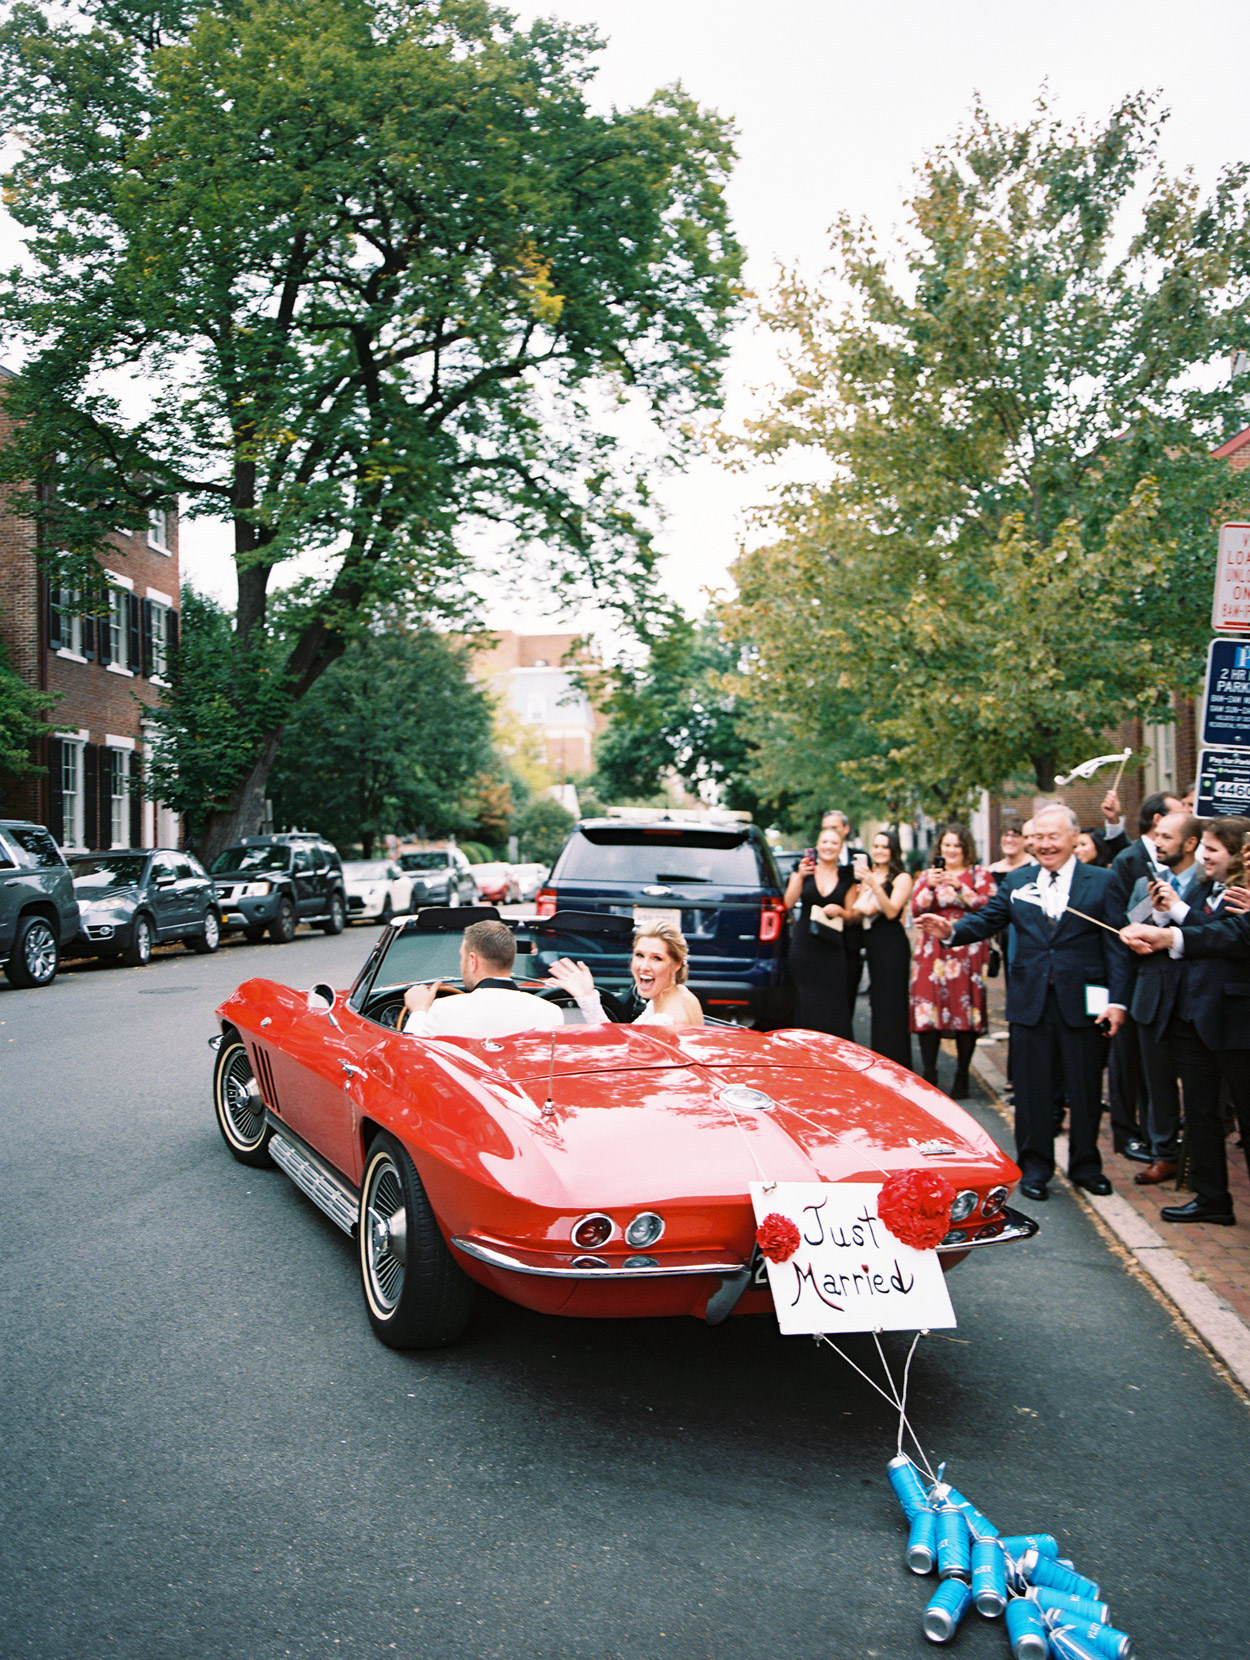 bride and groom driving away in just married car